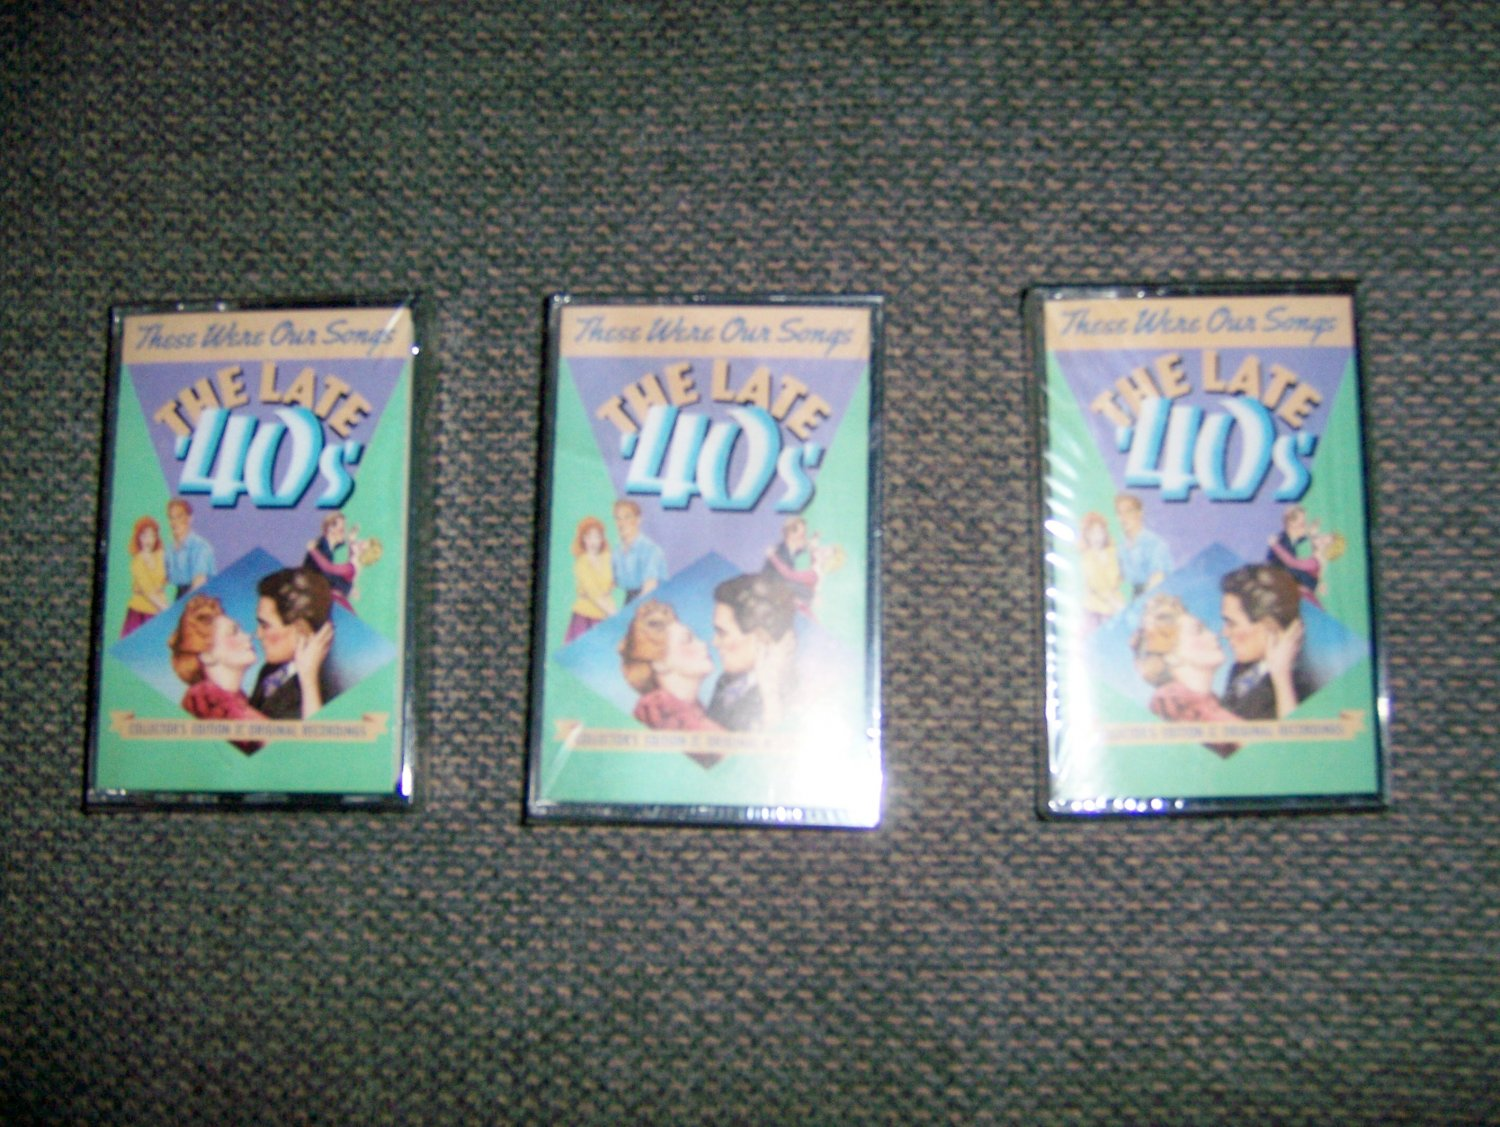 Cassettes These Were Our Songs 2 Sided Set Of 3 BNK1602